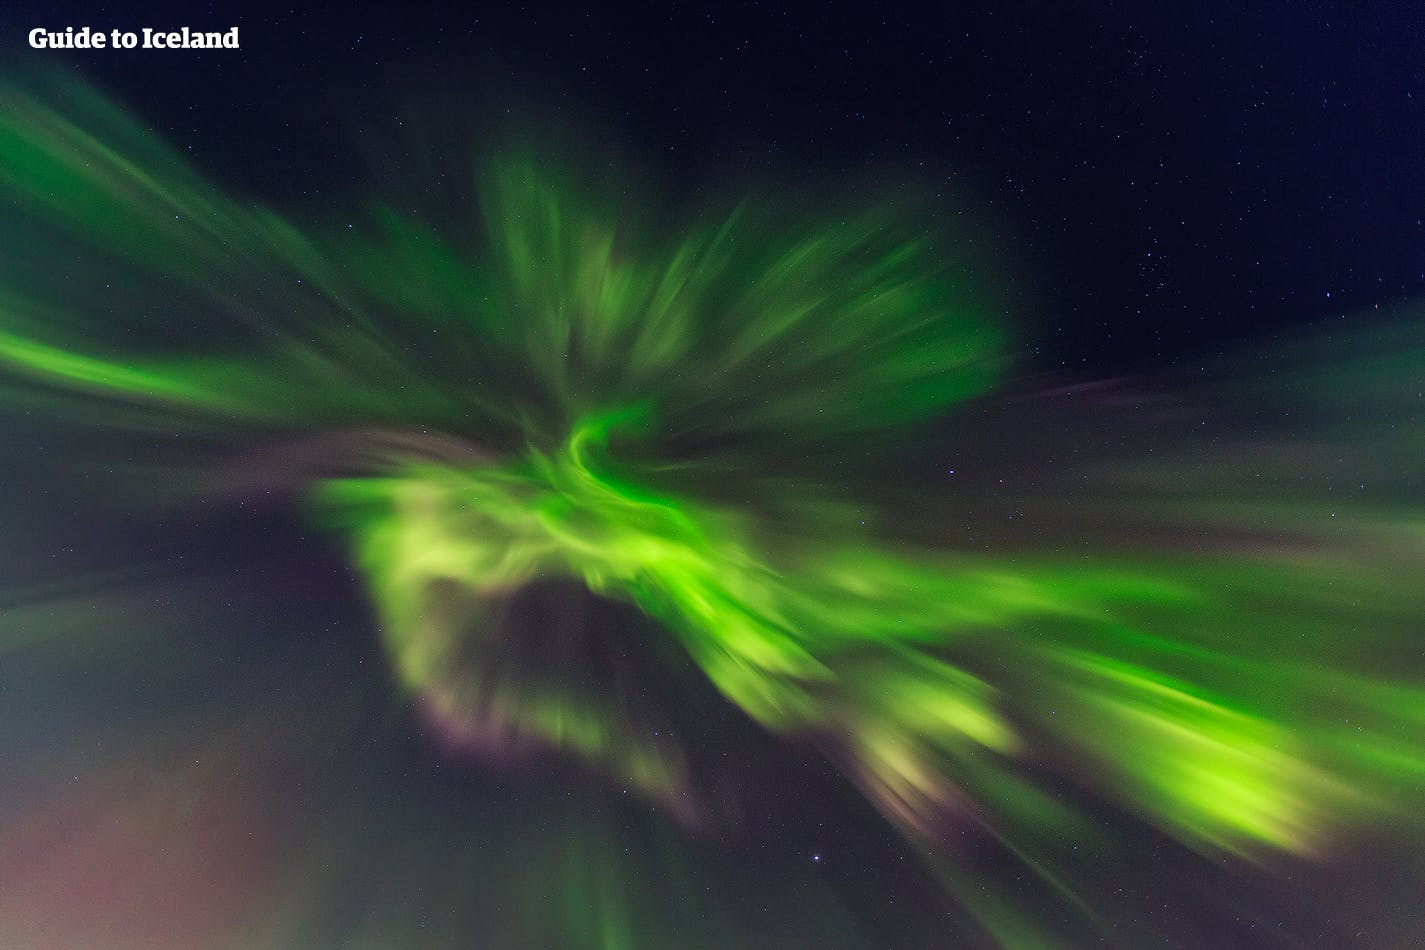 Sometimes the northern lights shine so bright in Iceland's skies that one has a hard time distinguishing between dream and reality.